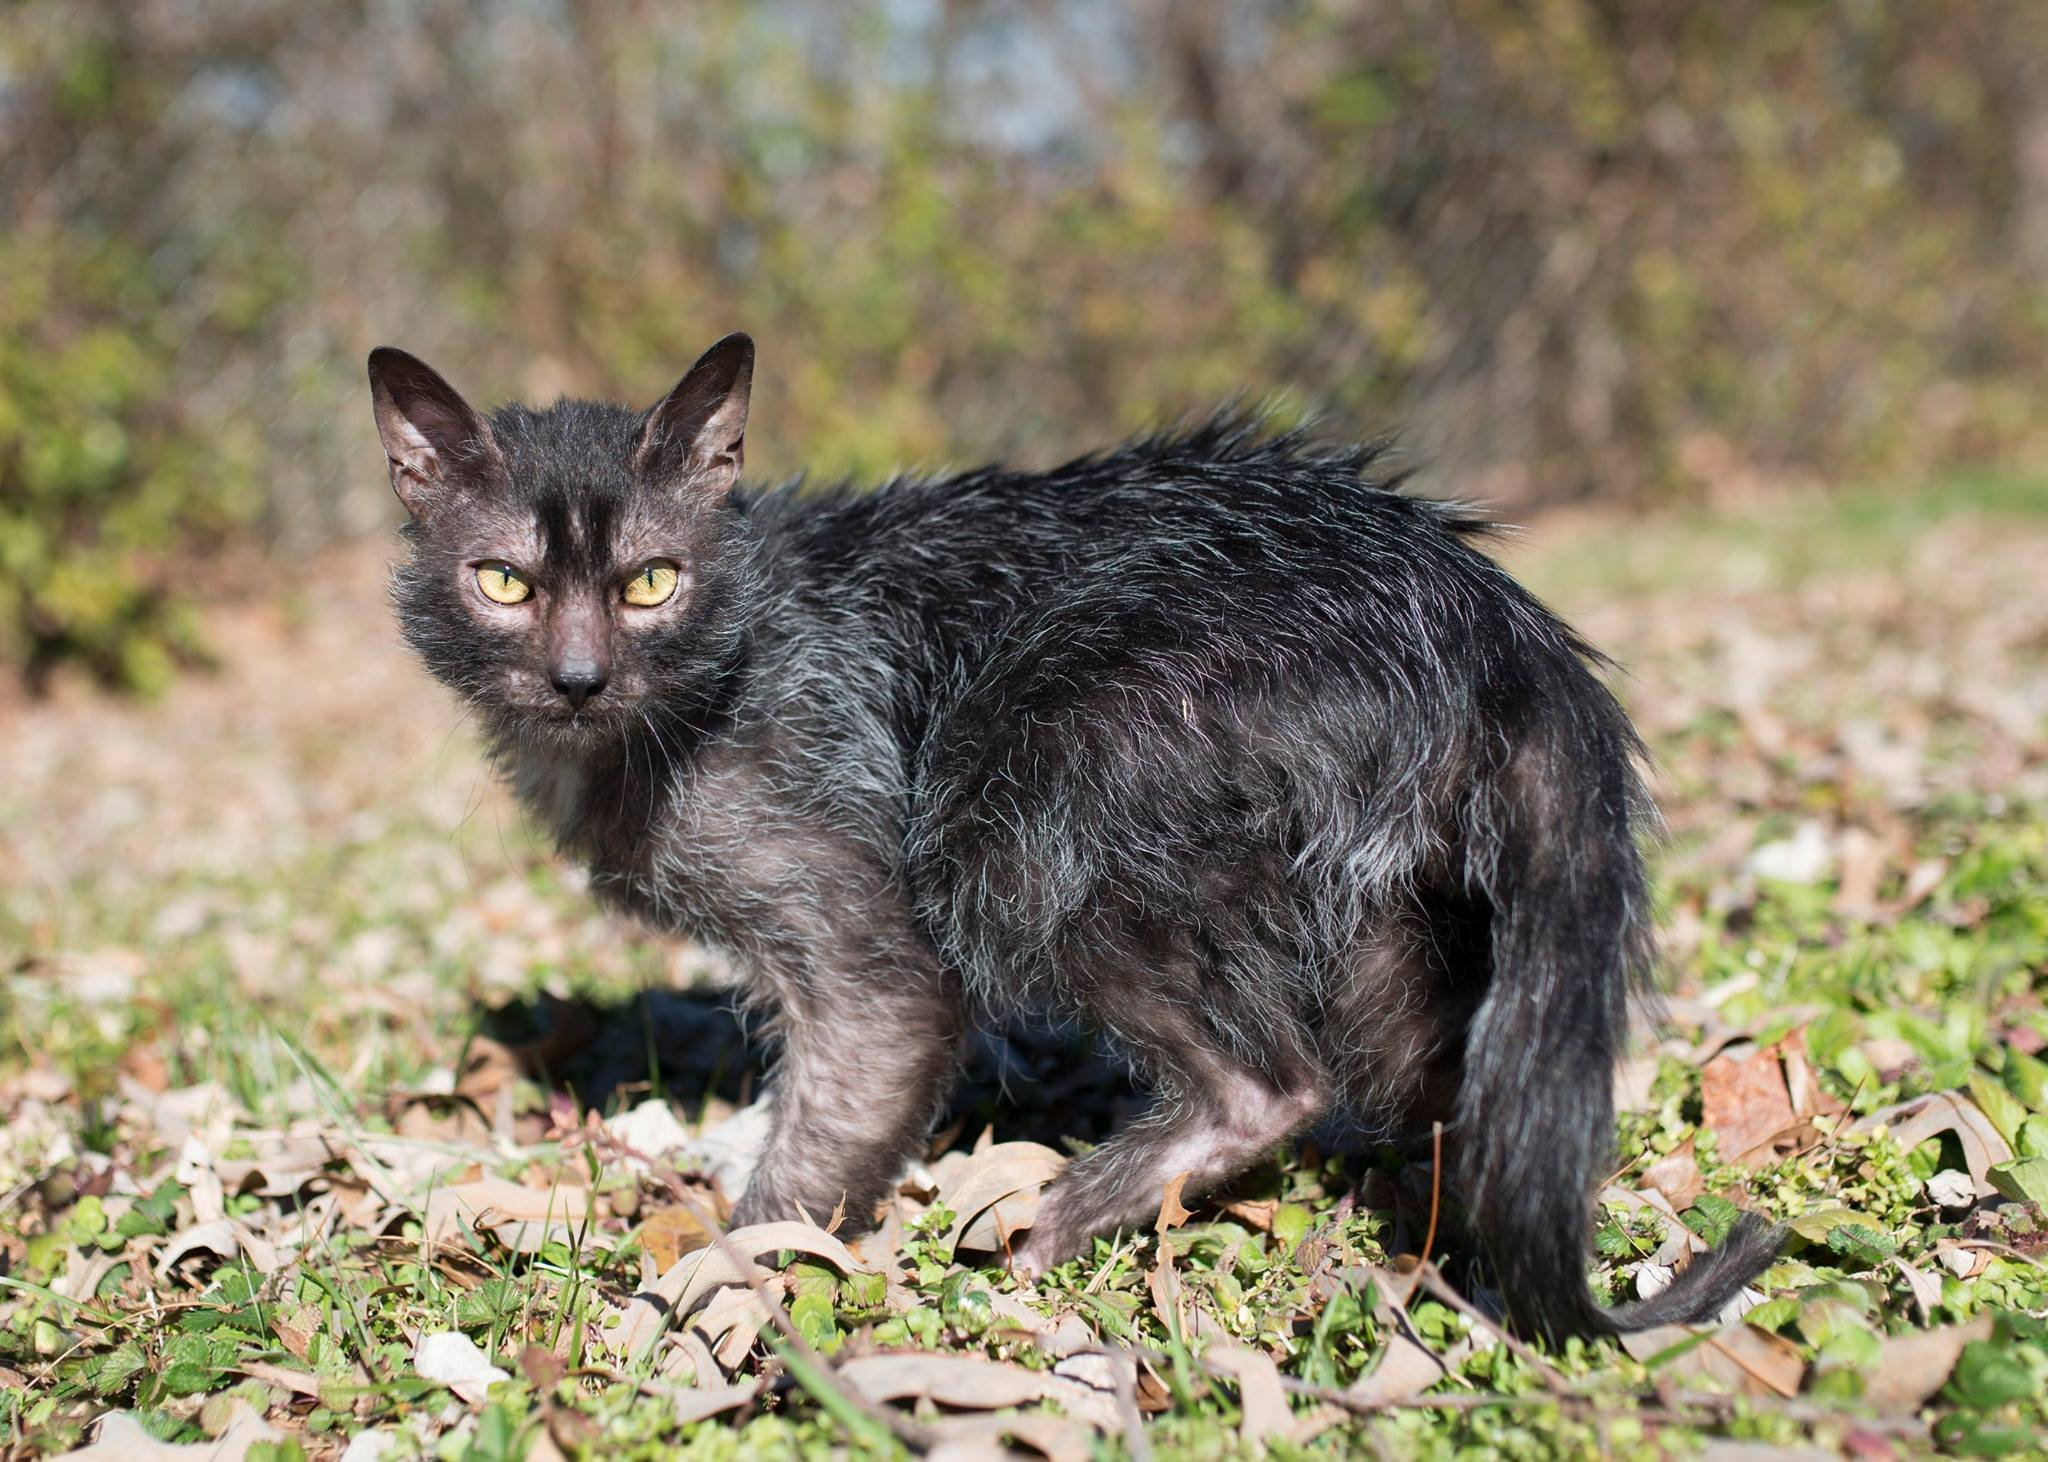 Cat breeds: Lykoi Cat characteristics and personality